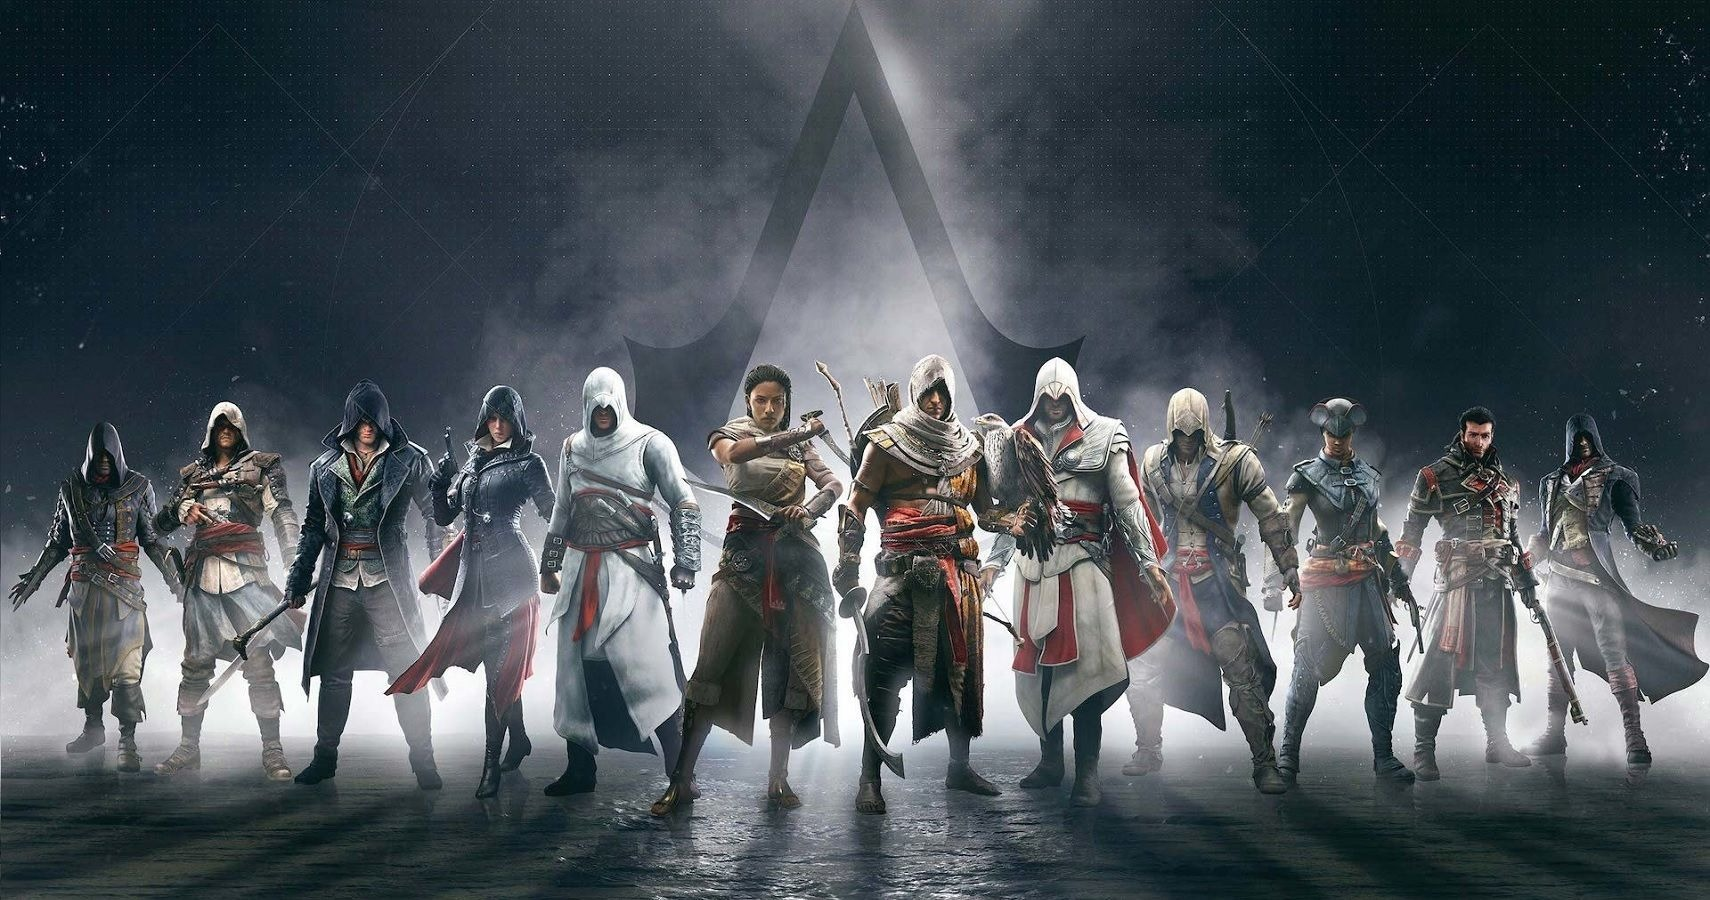 Assassin's Creed: Every Game, Ranked By How Long They Take To Beat